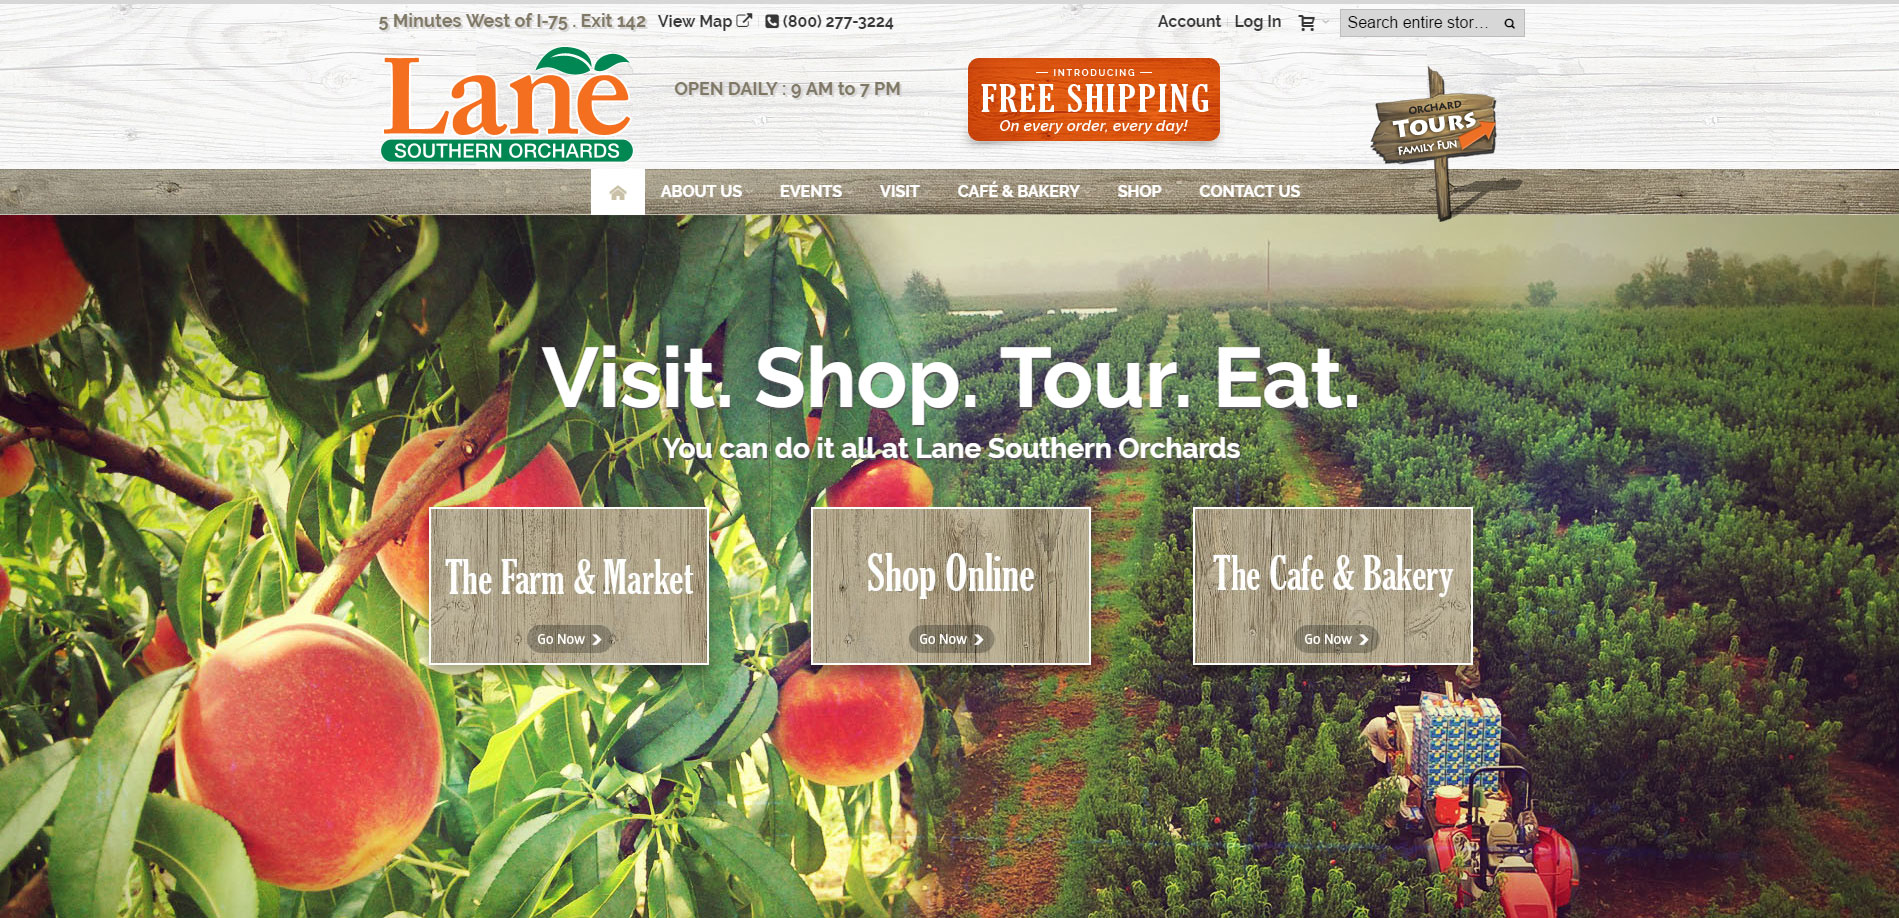 Lane Southern Orchards Website Goes Live